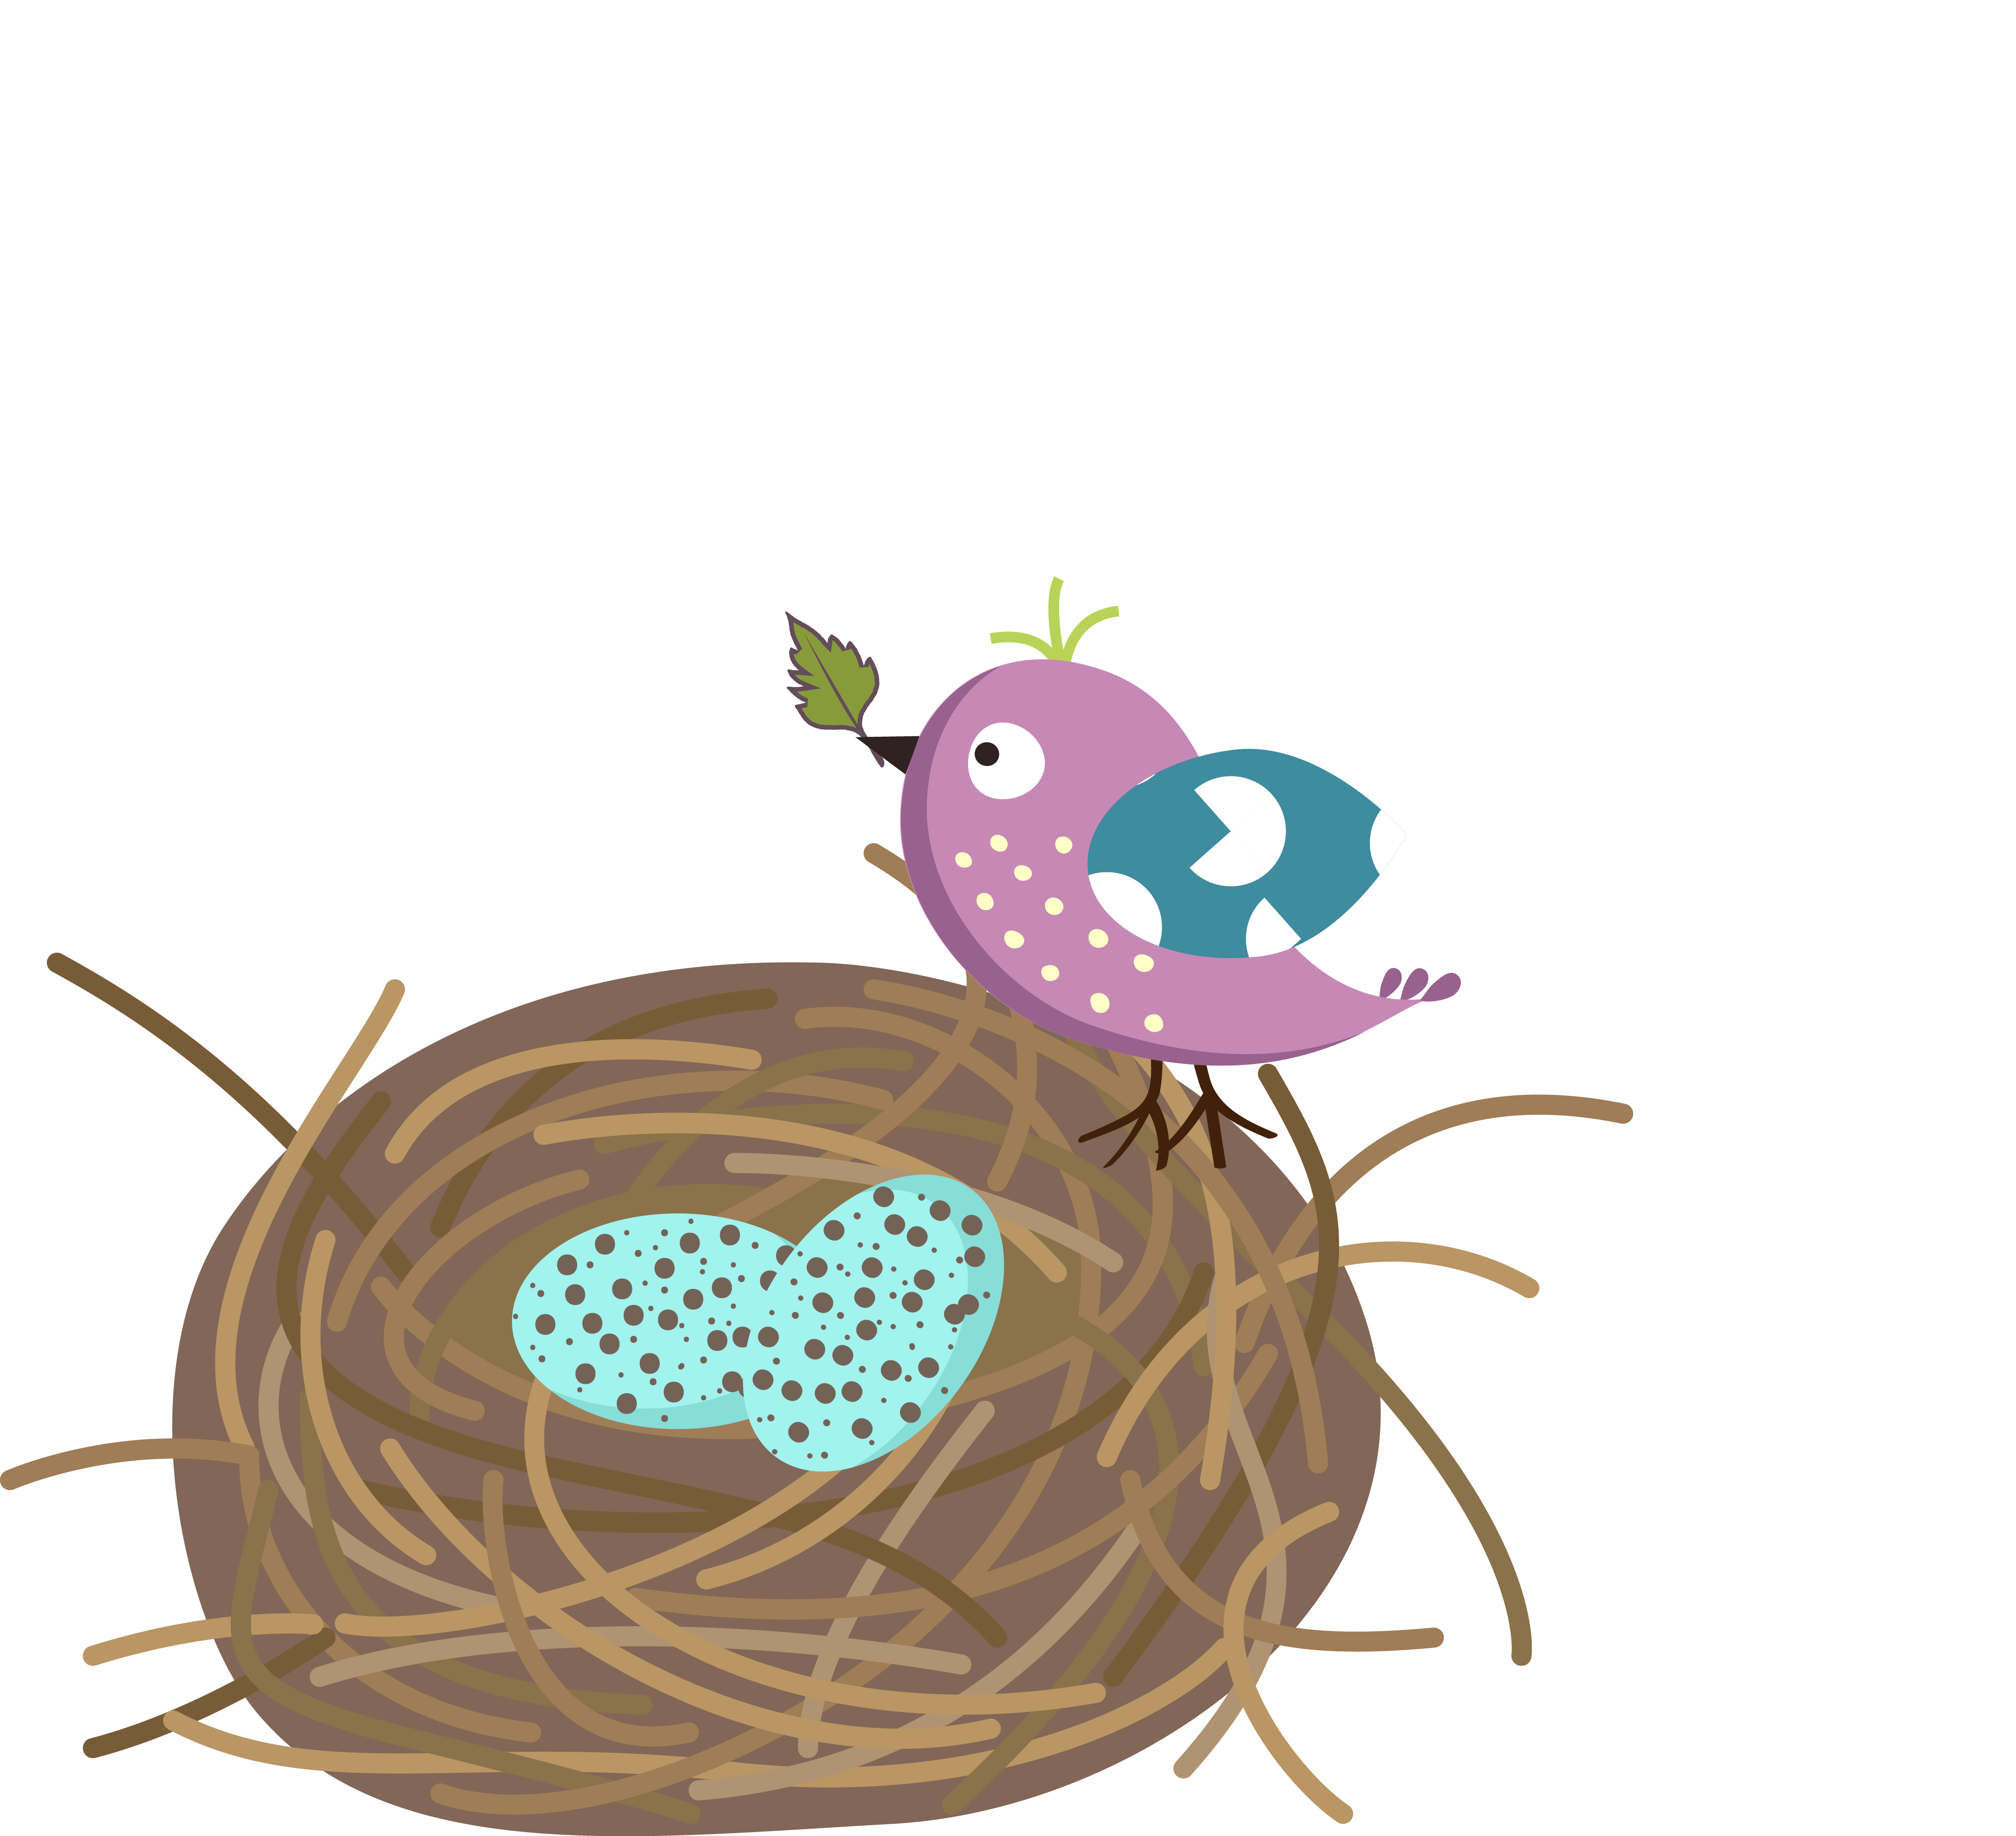 graphic Bird Nest Clipart at GetDrawings